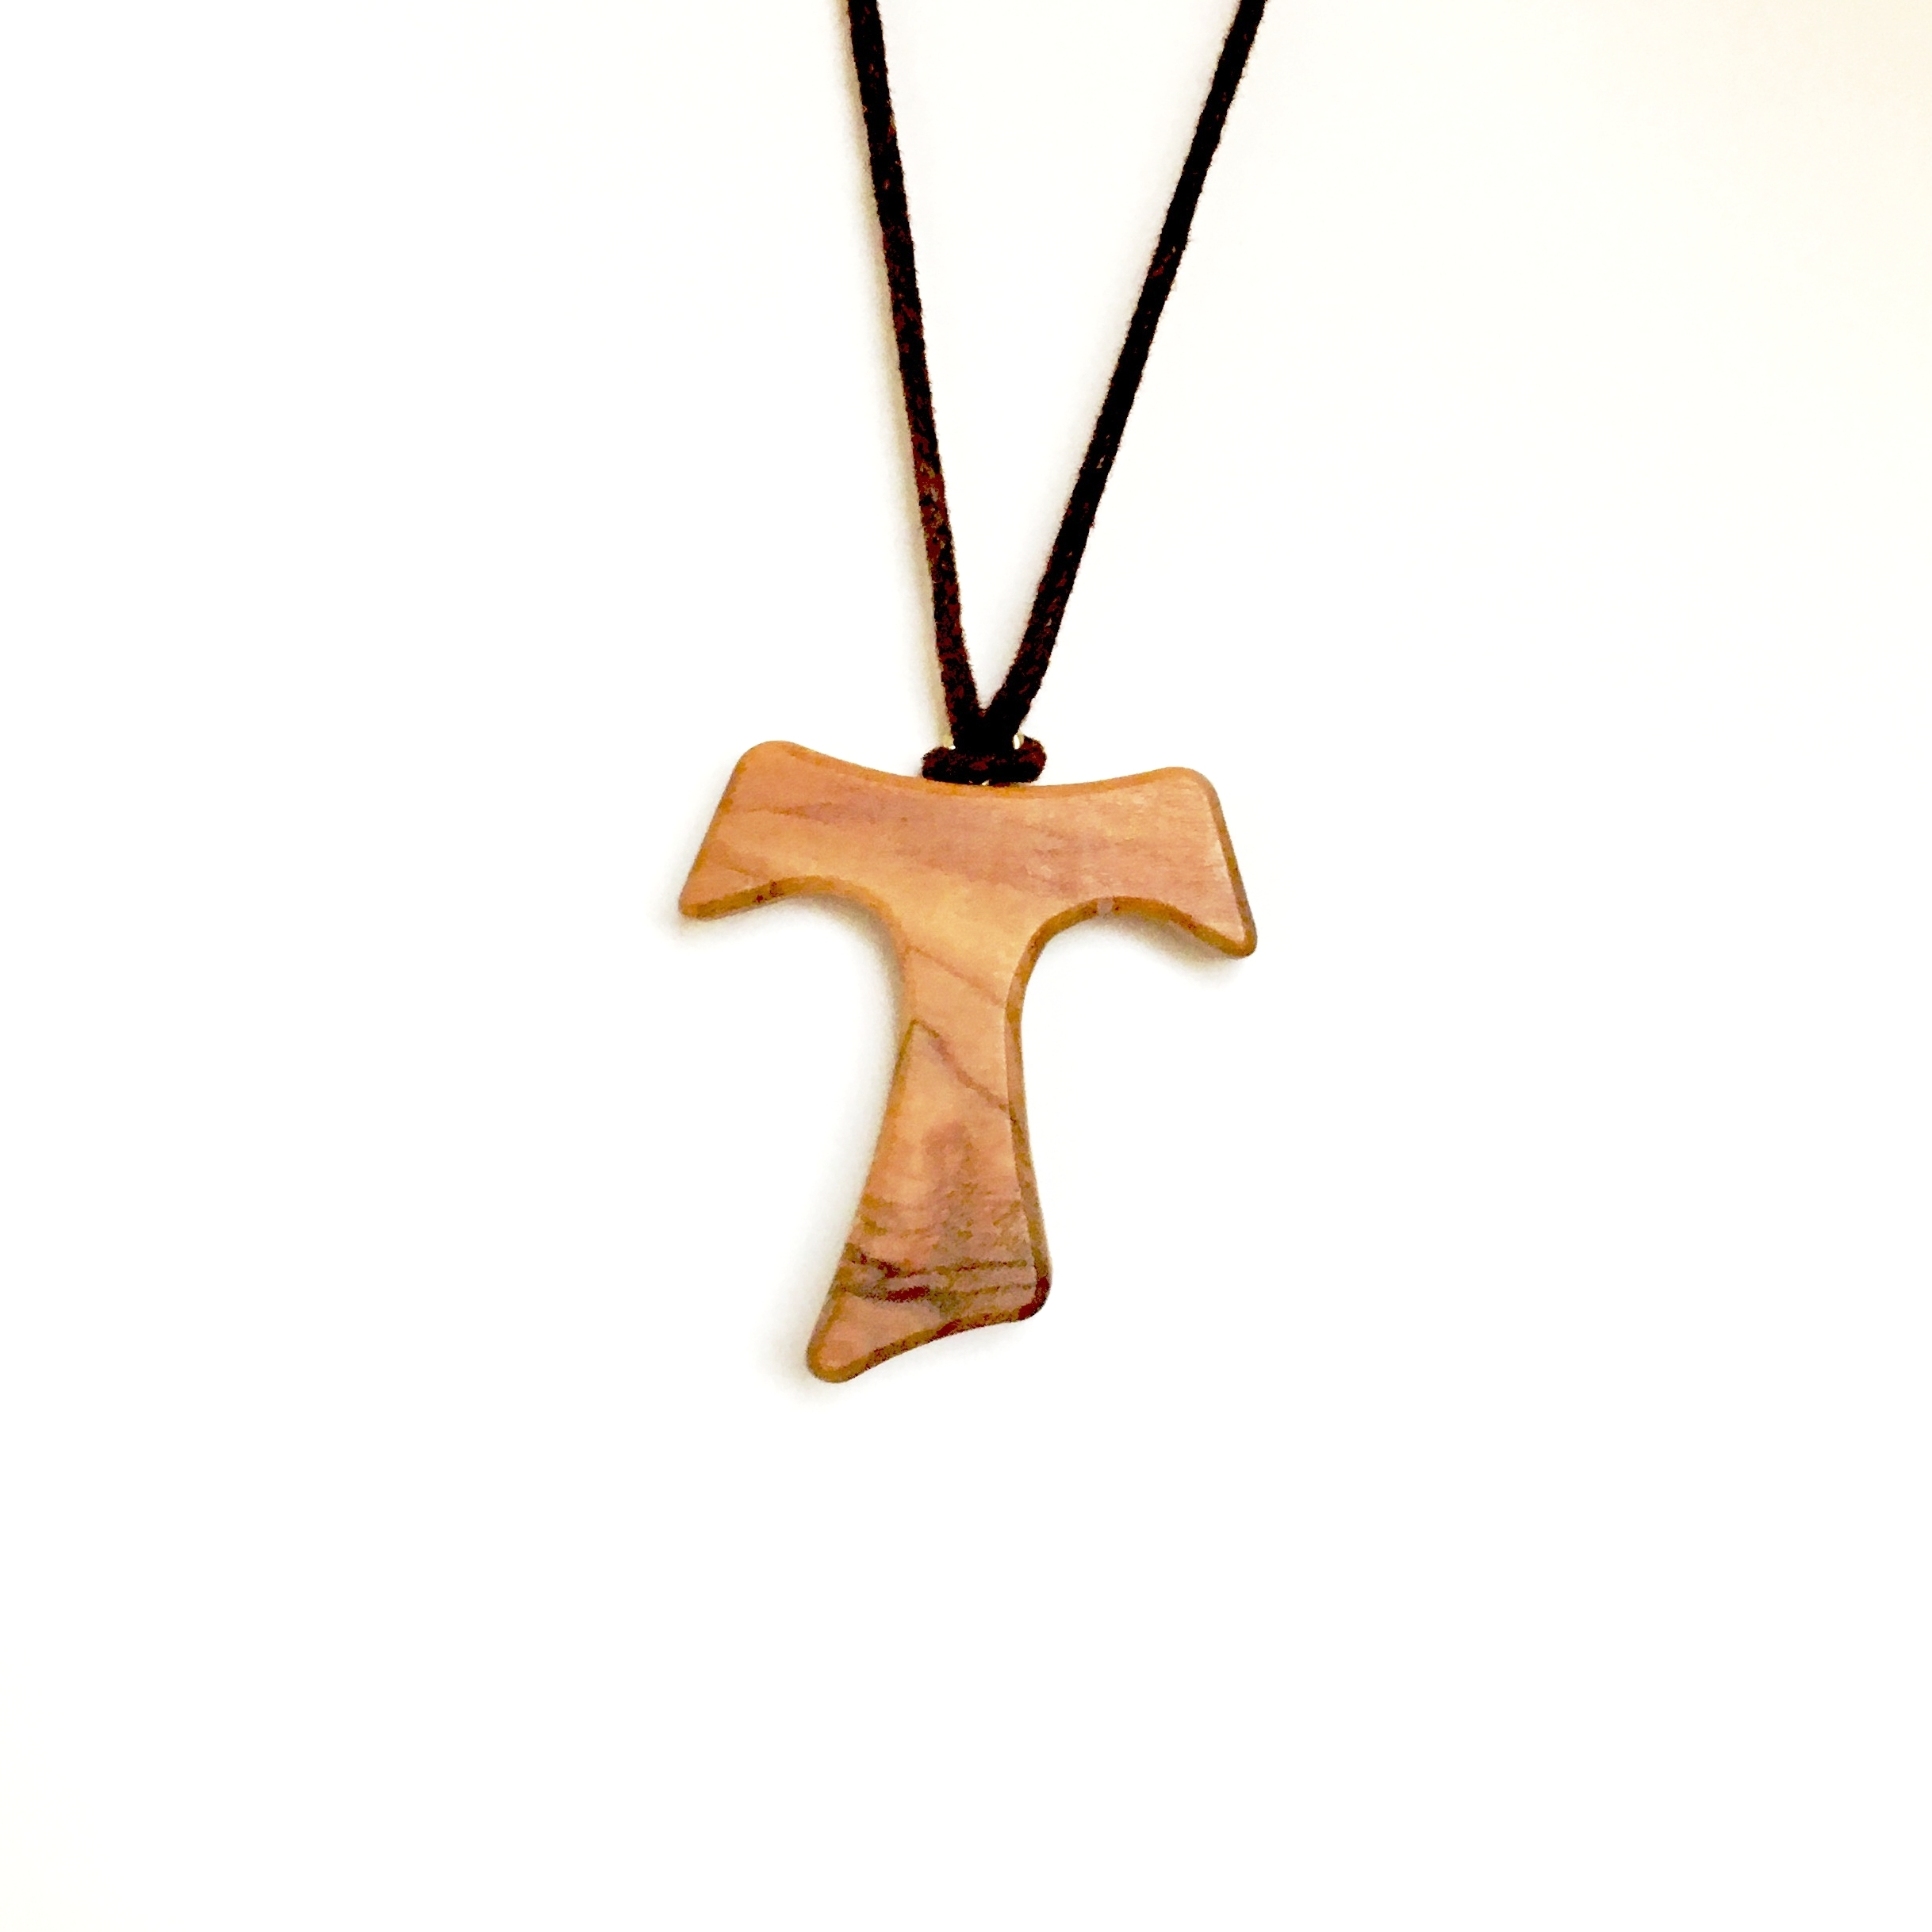 One of the wooden Tau crosses worn by our Pastoral Team.